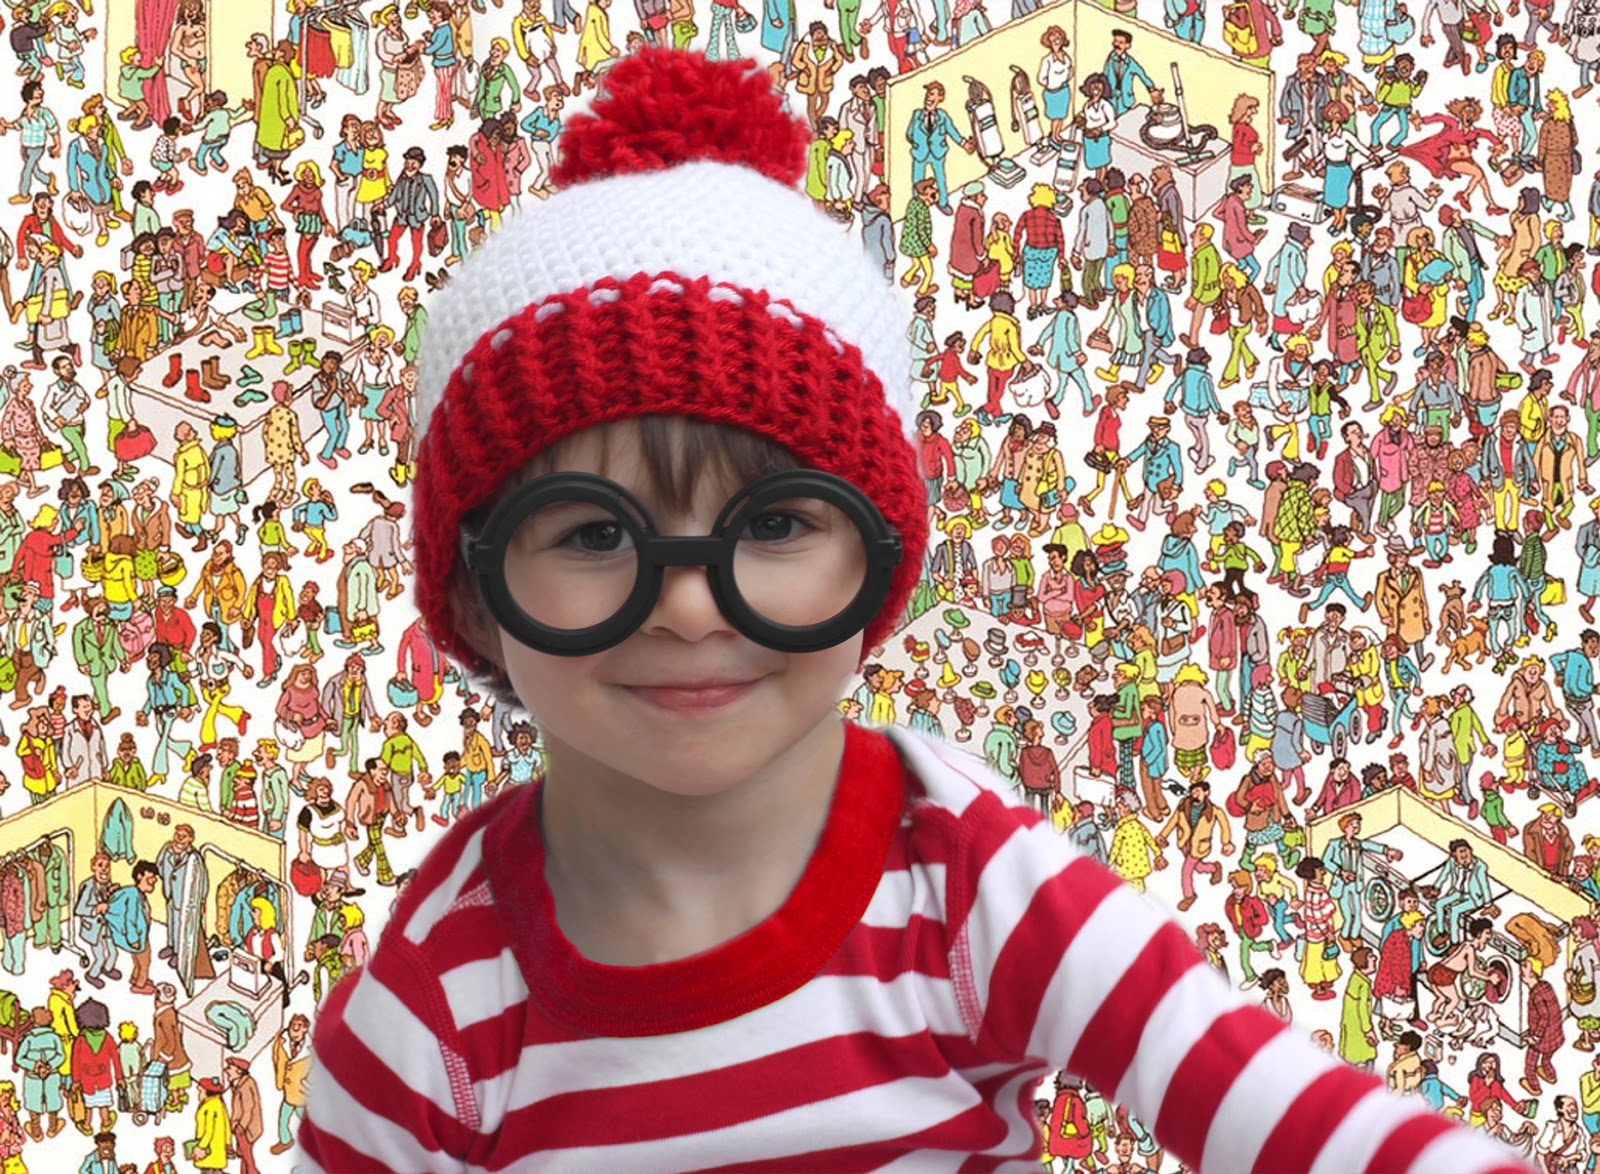 Waldo crochet hat pattern and costume repeat crafter me waldo crochet hat pattern and costume bankloansurffo Image collections